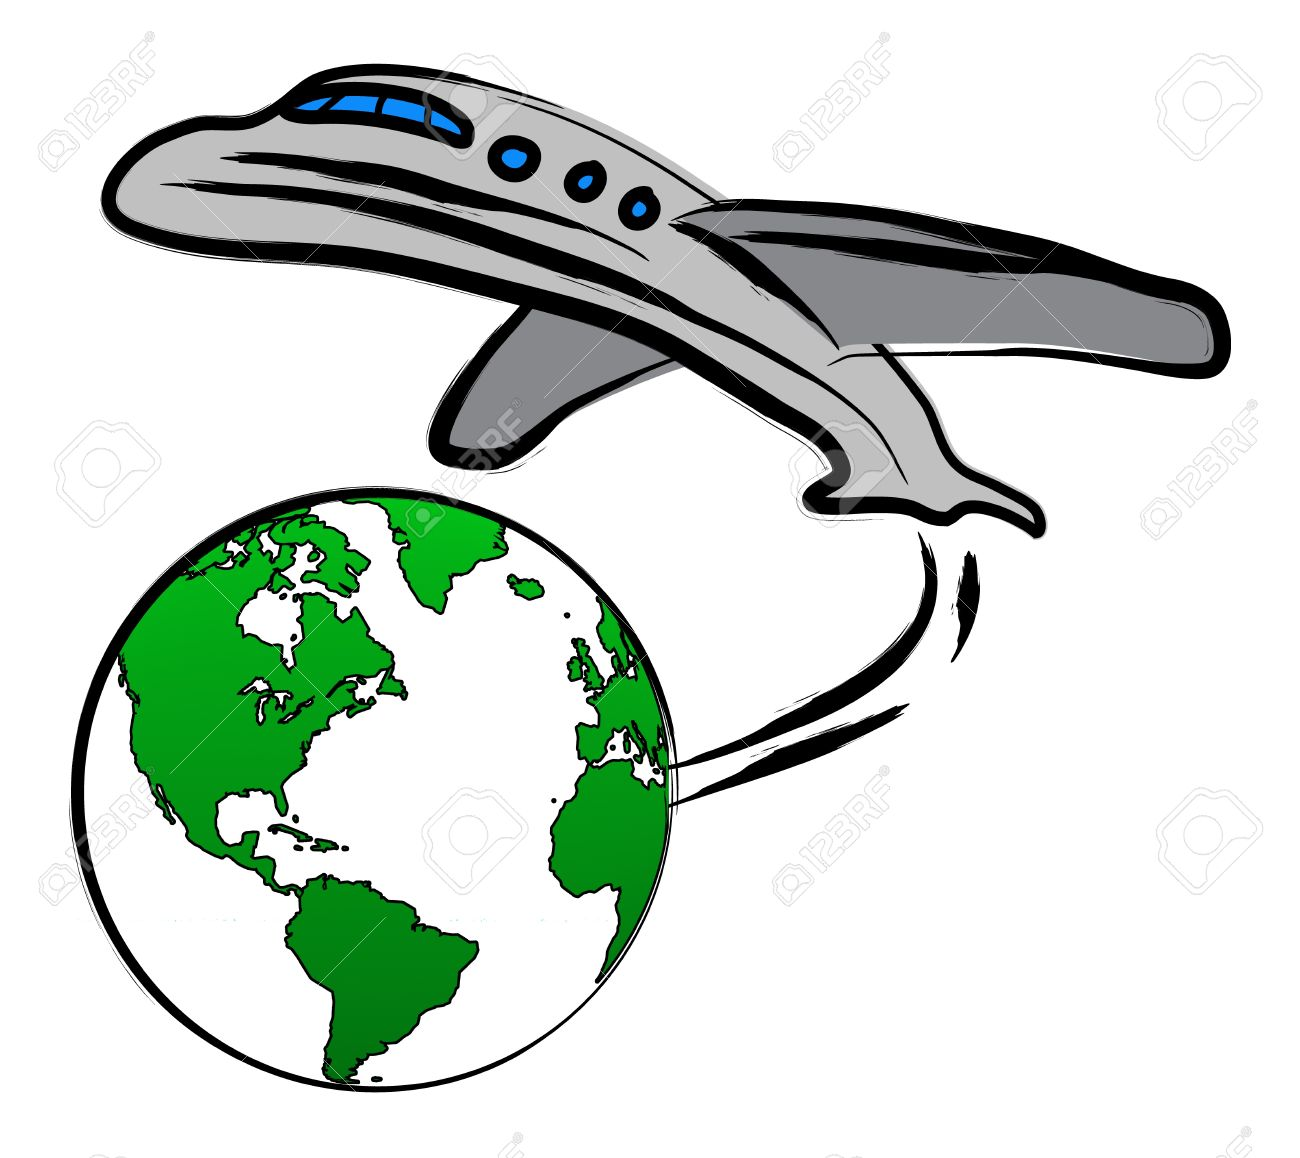 Airplane And World Clipart.